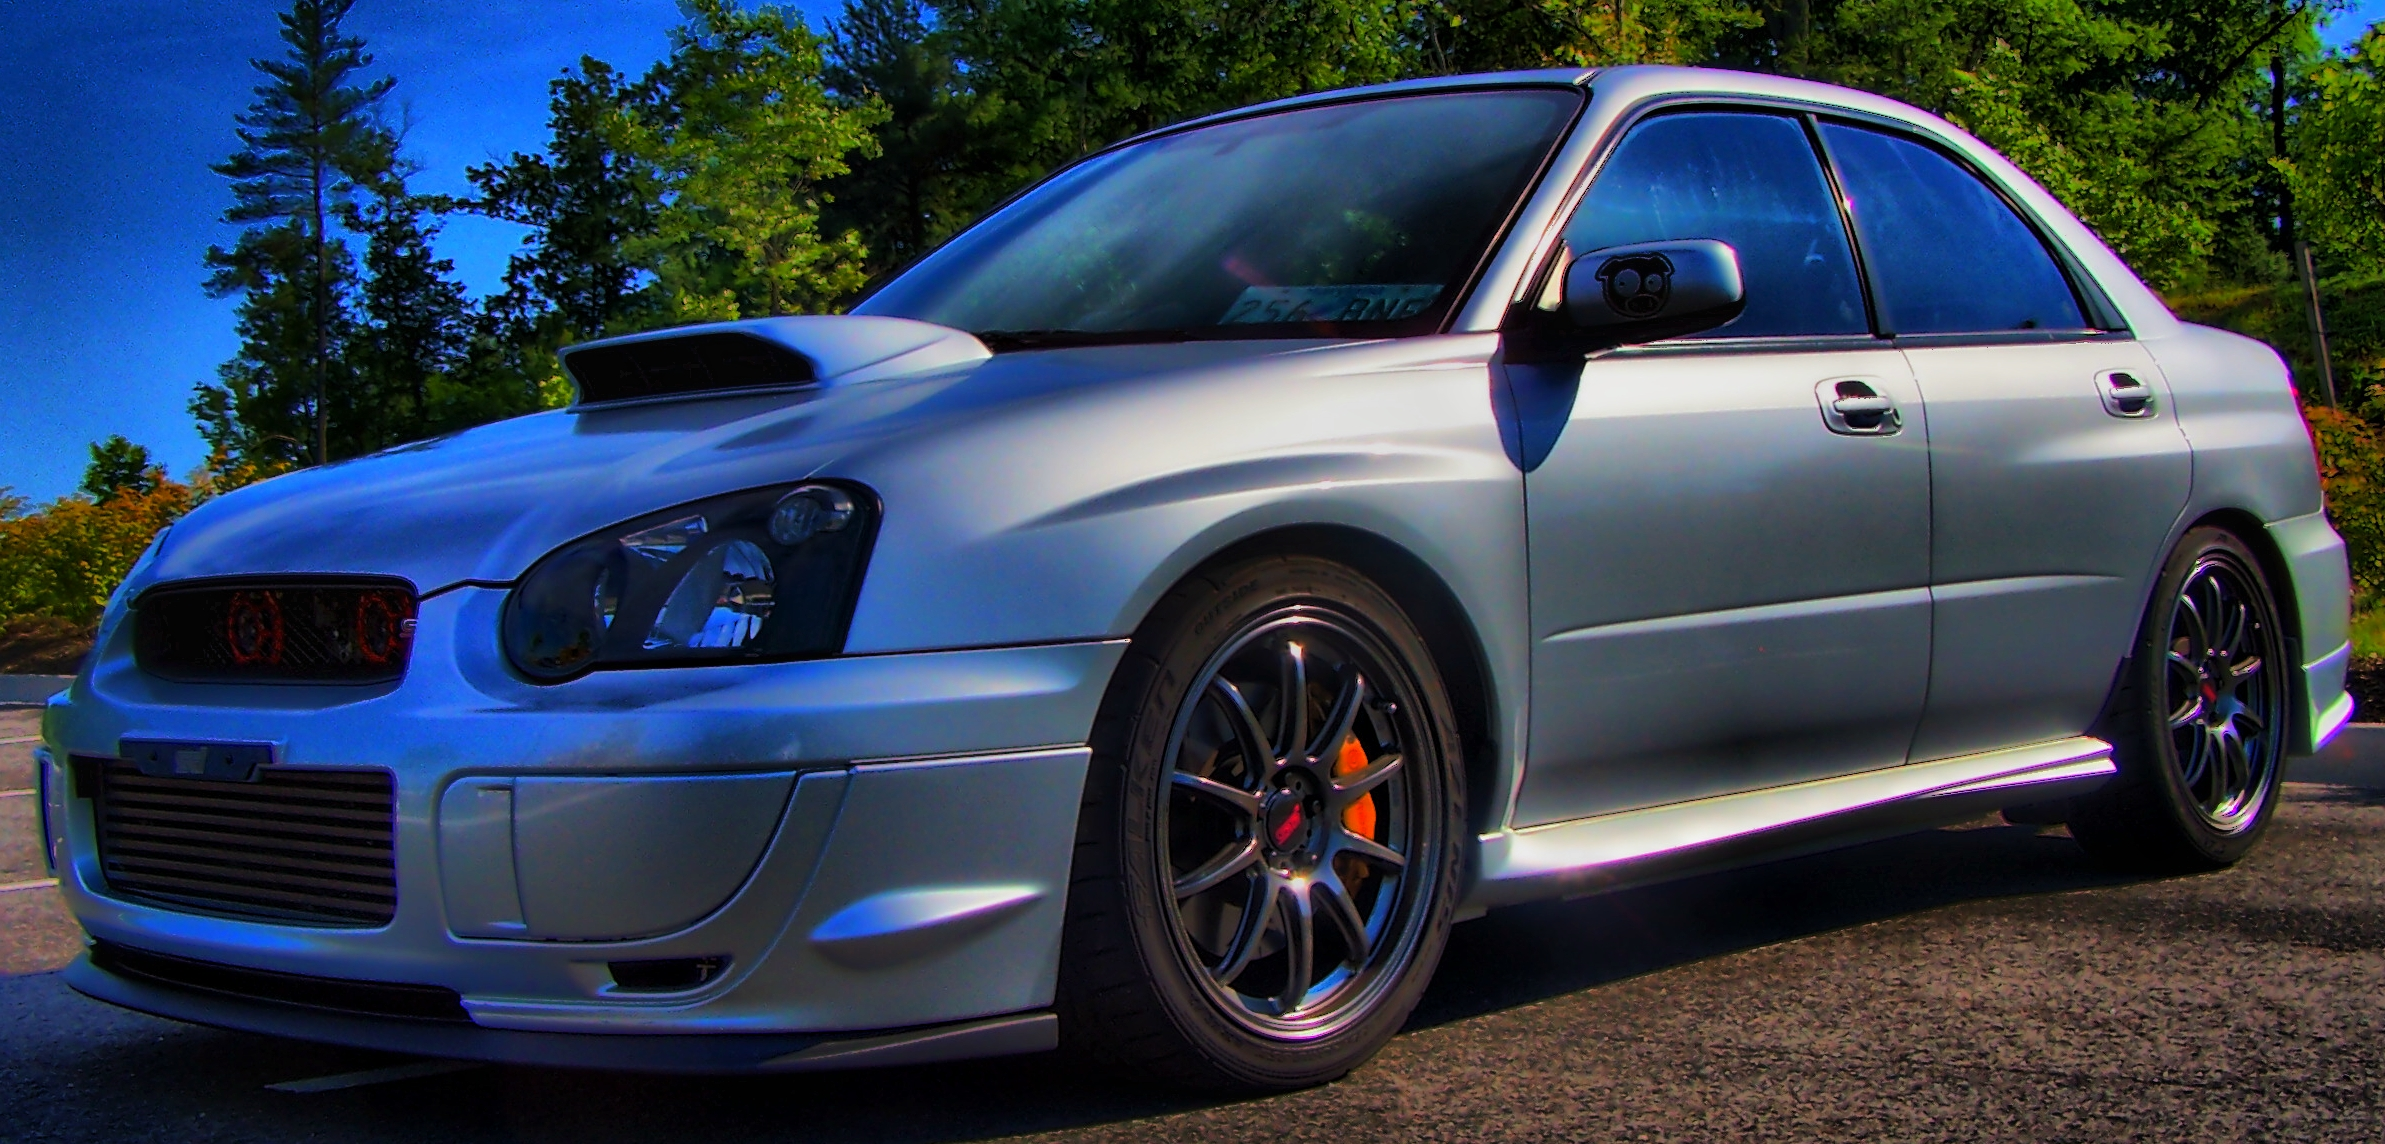 Boostinduced's 35r'd PSM 2004 STi Full Cosworth/Crawford...TIME 2 GO FORGED!-sighdr-jpg